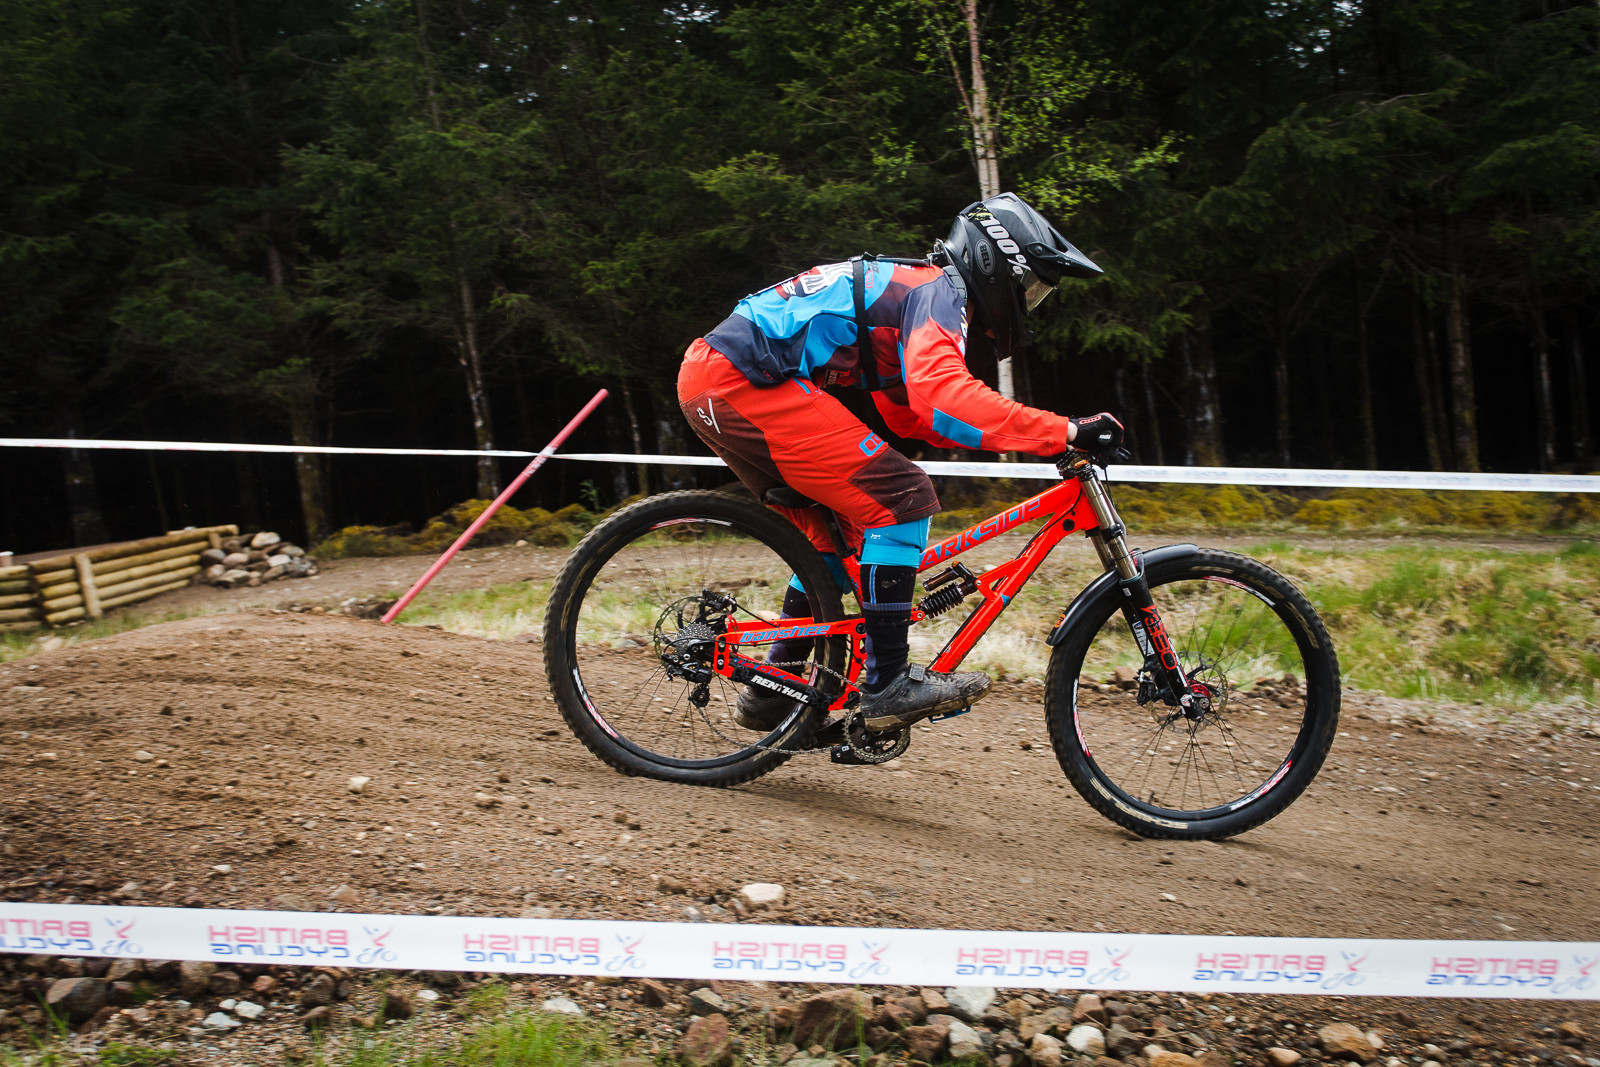 G-Out Fort William - Banshee Darkside - G-Out Project - Fort William BDS 2015 - Mountain Biking Pictures - Vital MTB